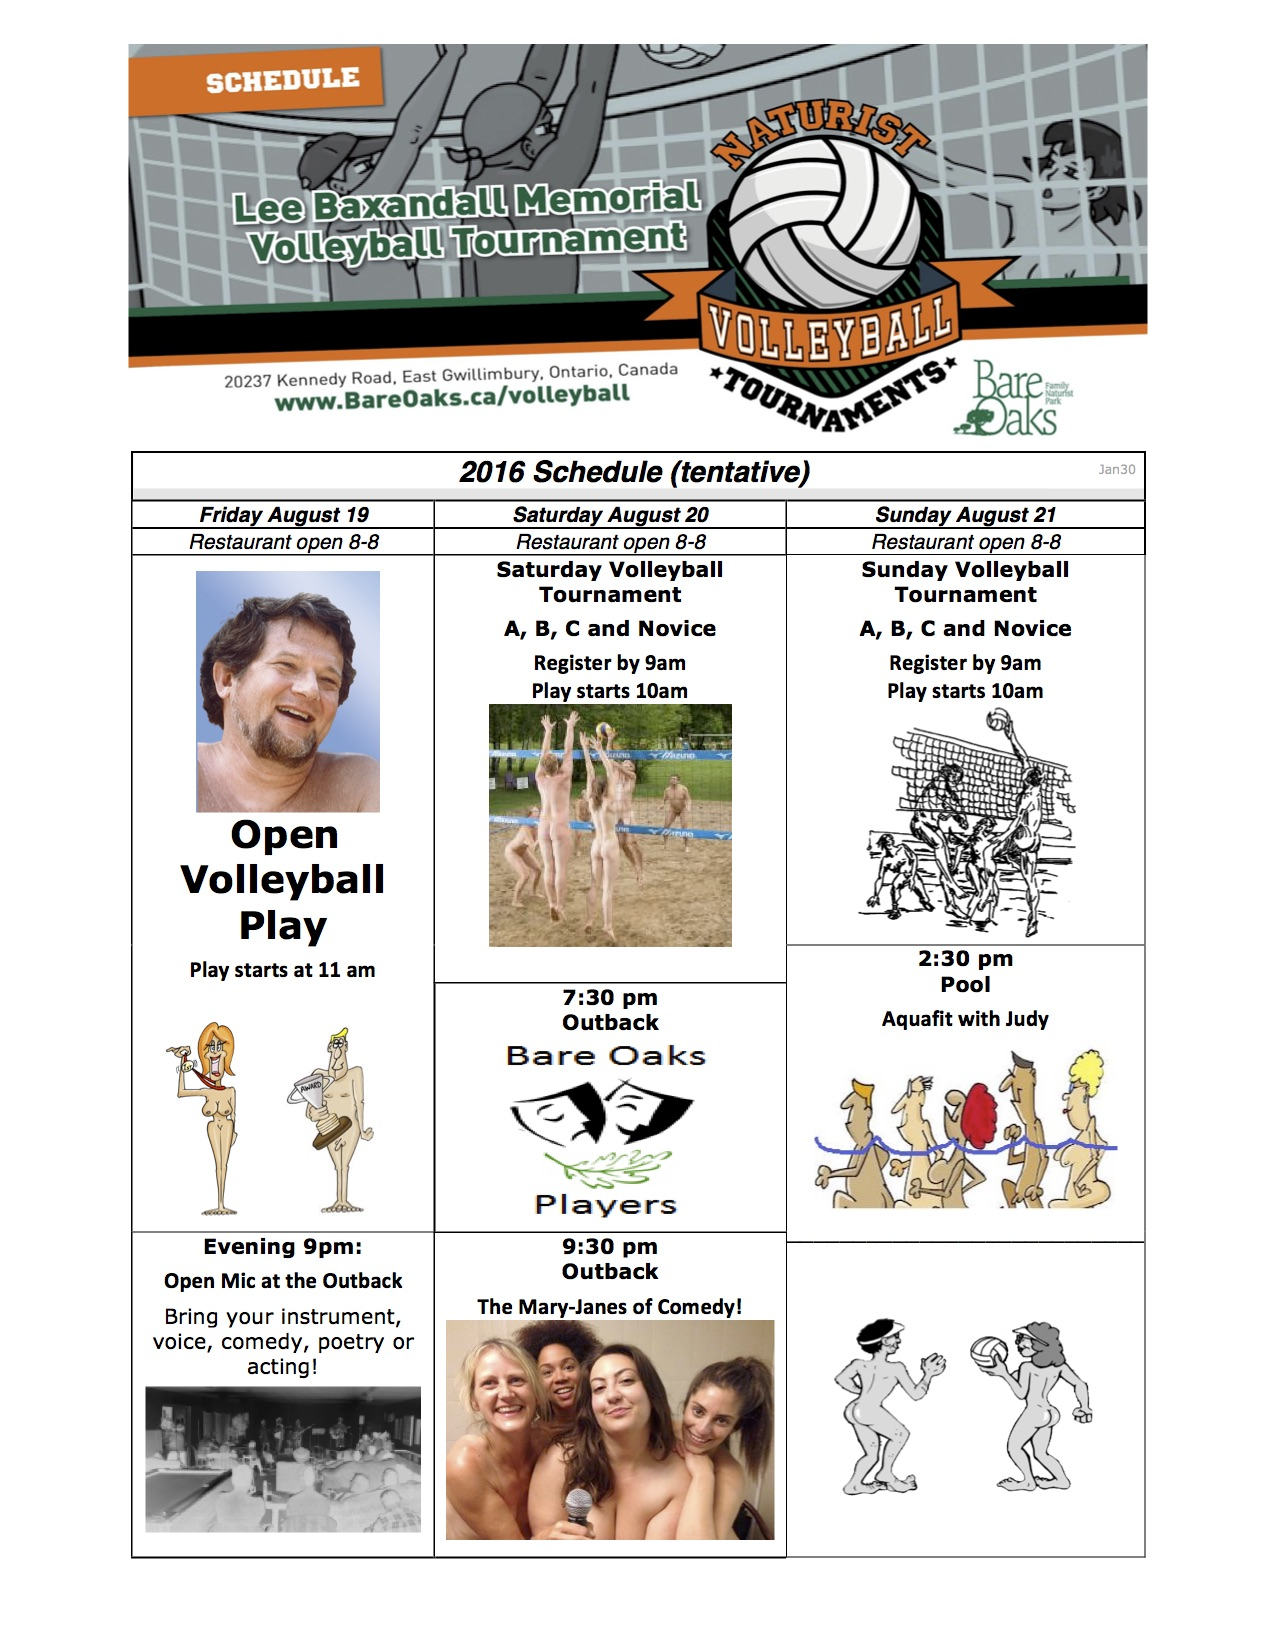 Baxandall Nude Volleyball Tournament schedule 2016